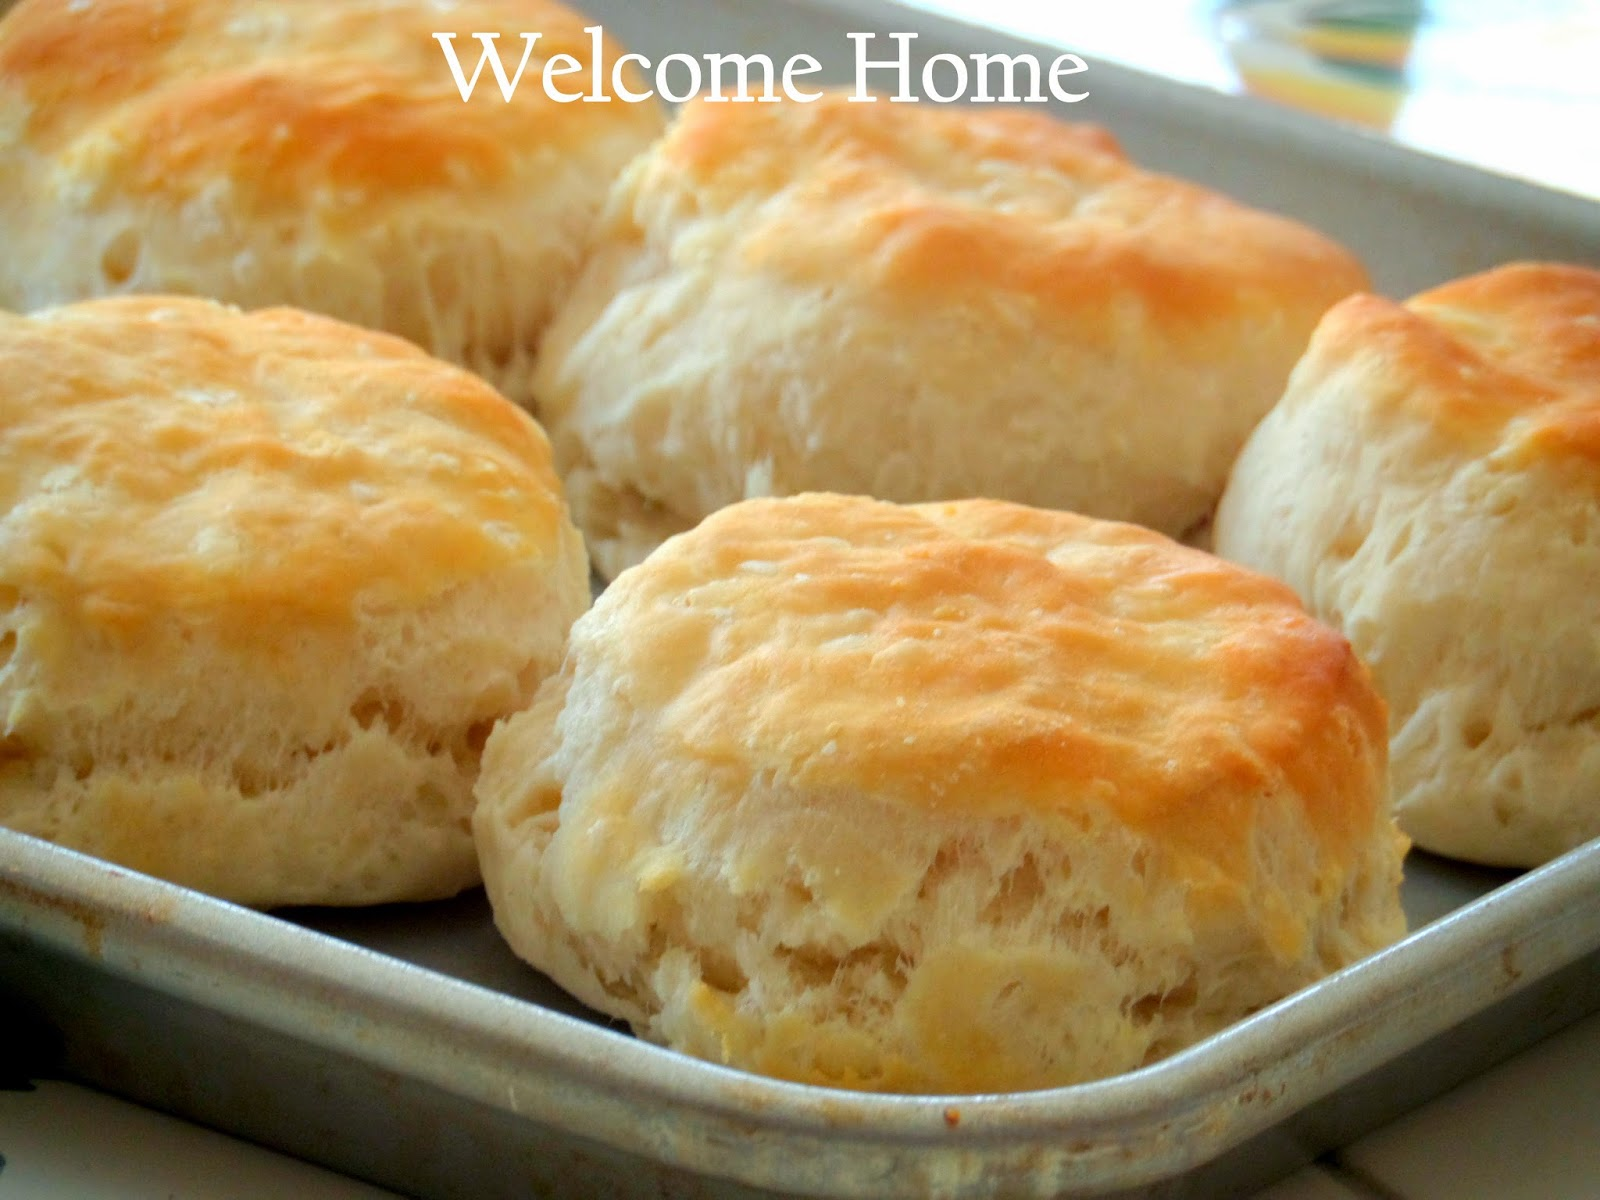 ... Buttermilk Biscuit Biscuits And Gravy Recipe and Cookies Packets